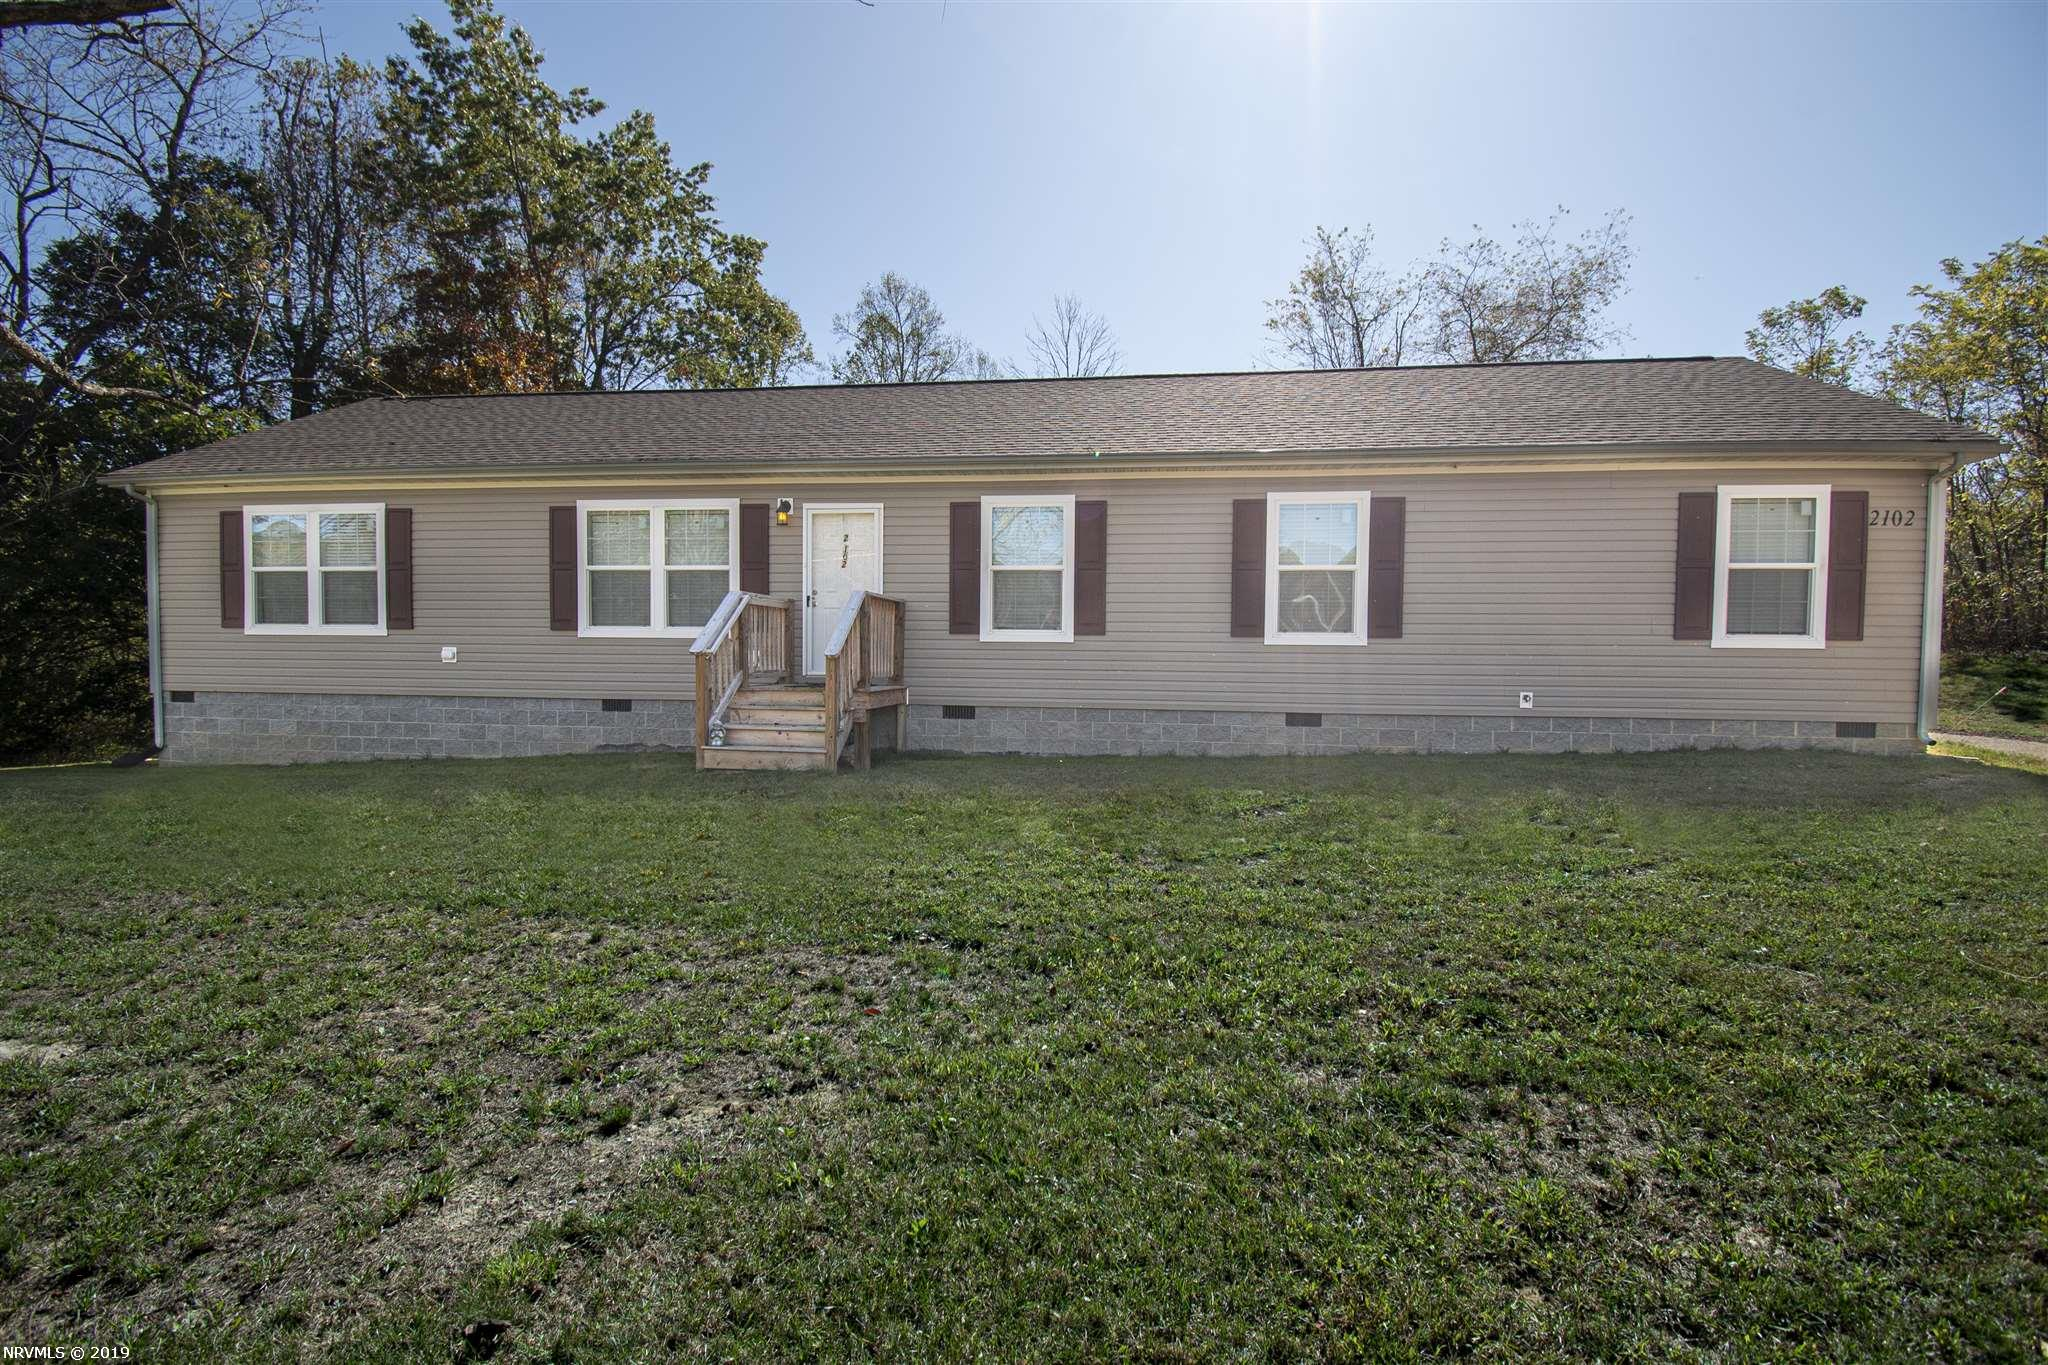 Almost new 1 level 4BR/2BA home in Blacksburg.  Home is located on .56 acre lot that backs up to farmland.  Large Kitchen is open to both the Living and Family Rooms, featuring a large island, recessed can and pendant lighting, wood cabinets with ample storage, lots of counter space, and Frigidaire appliances.  Large Master Bedroom with en suite bath that features both a larger glass shower, a soaker tub, dual vanities, and his/her closets.  3 additional larger bedrooms share a 2nd bath also with dual vanities.  Rural setting located just minutes to Blacksburg Schools and Virginia Tech.